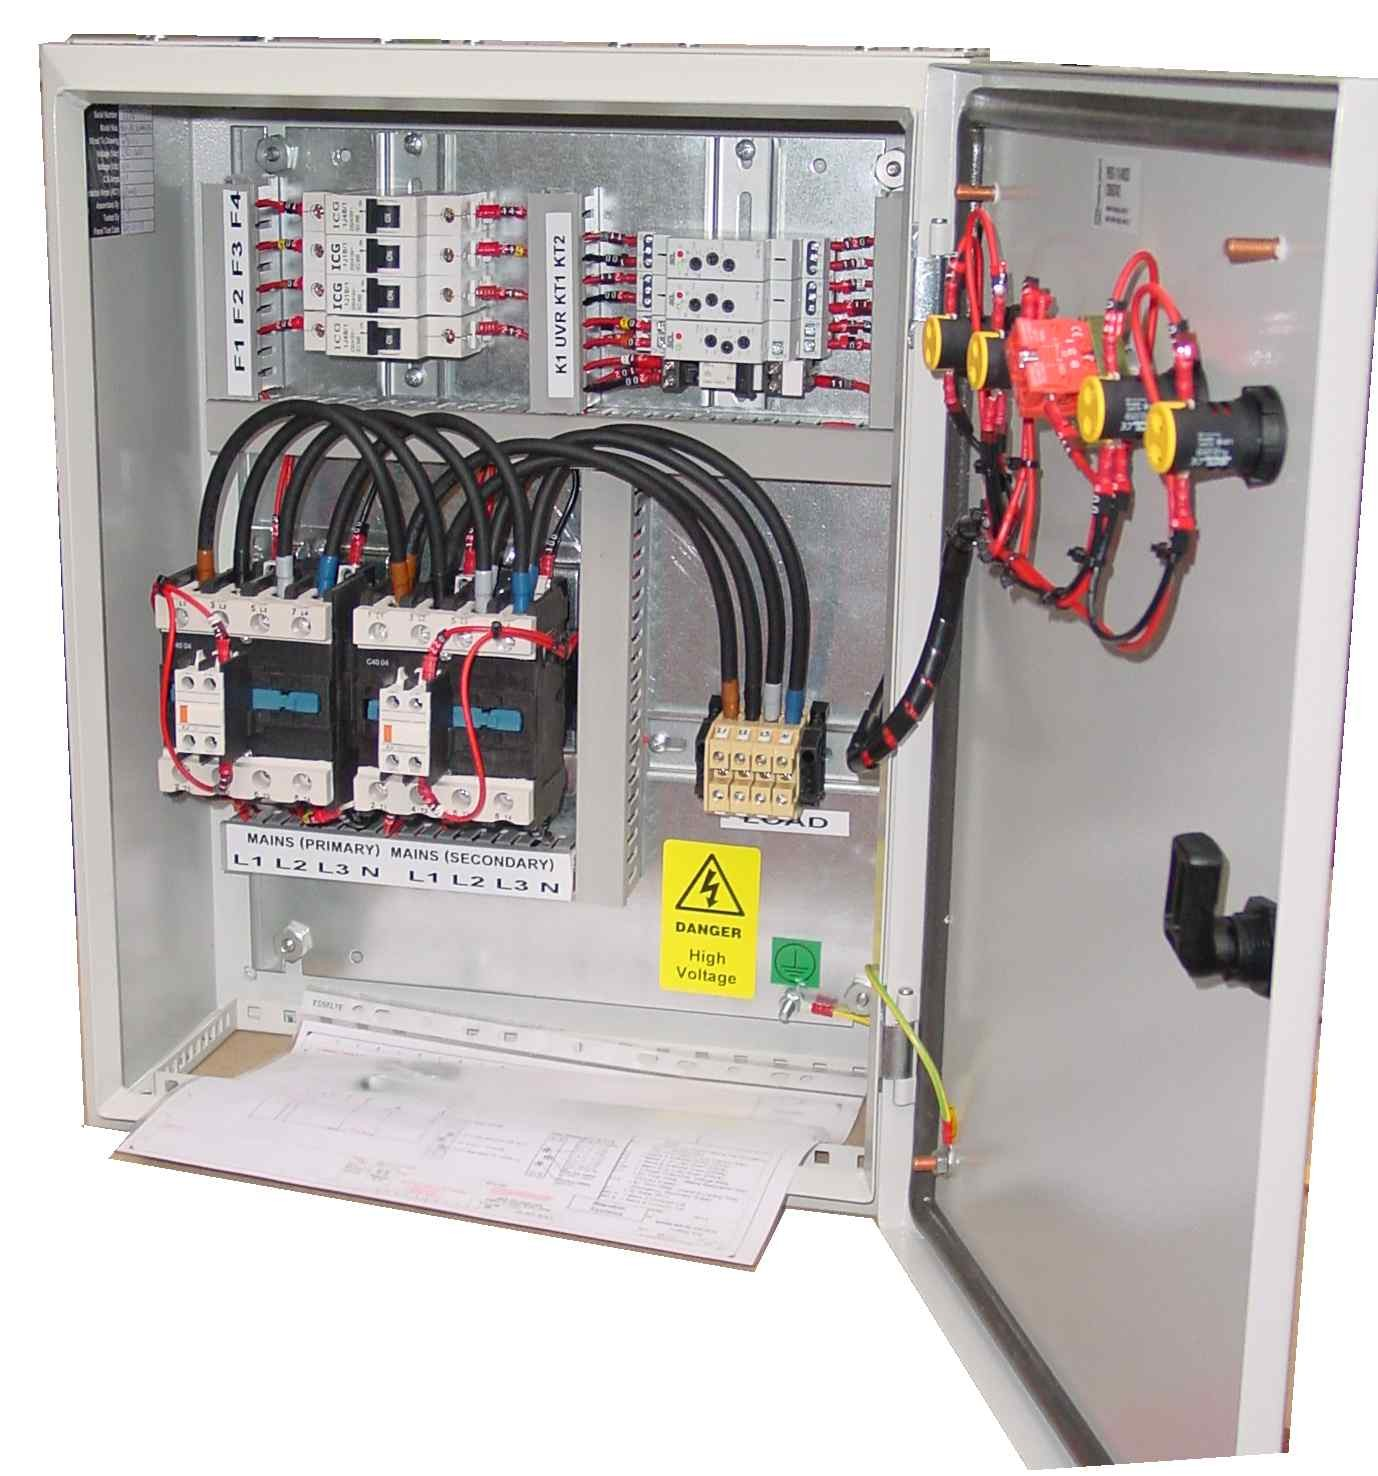 electric range wiring diagram circuit with Ats 3 Phase Mains Mains Icg Contactors 40 1000a 783 on Resistance Soldering Transformer furthermore 684 Tesys Gv2 besides X2l663 in addition Mppt Solar Inverter Hybrid With Pure 60294673881 in addition Type K Linear And Rotary D er Actuators Rotork.